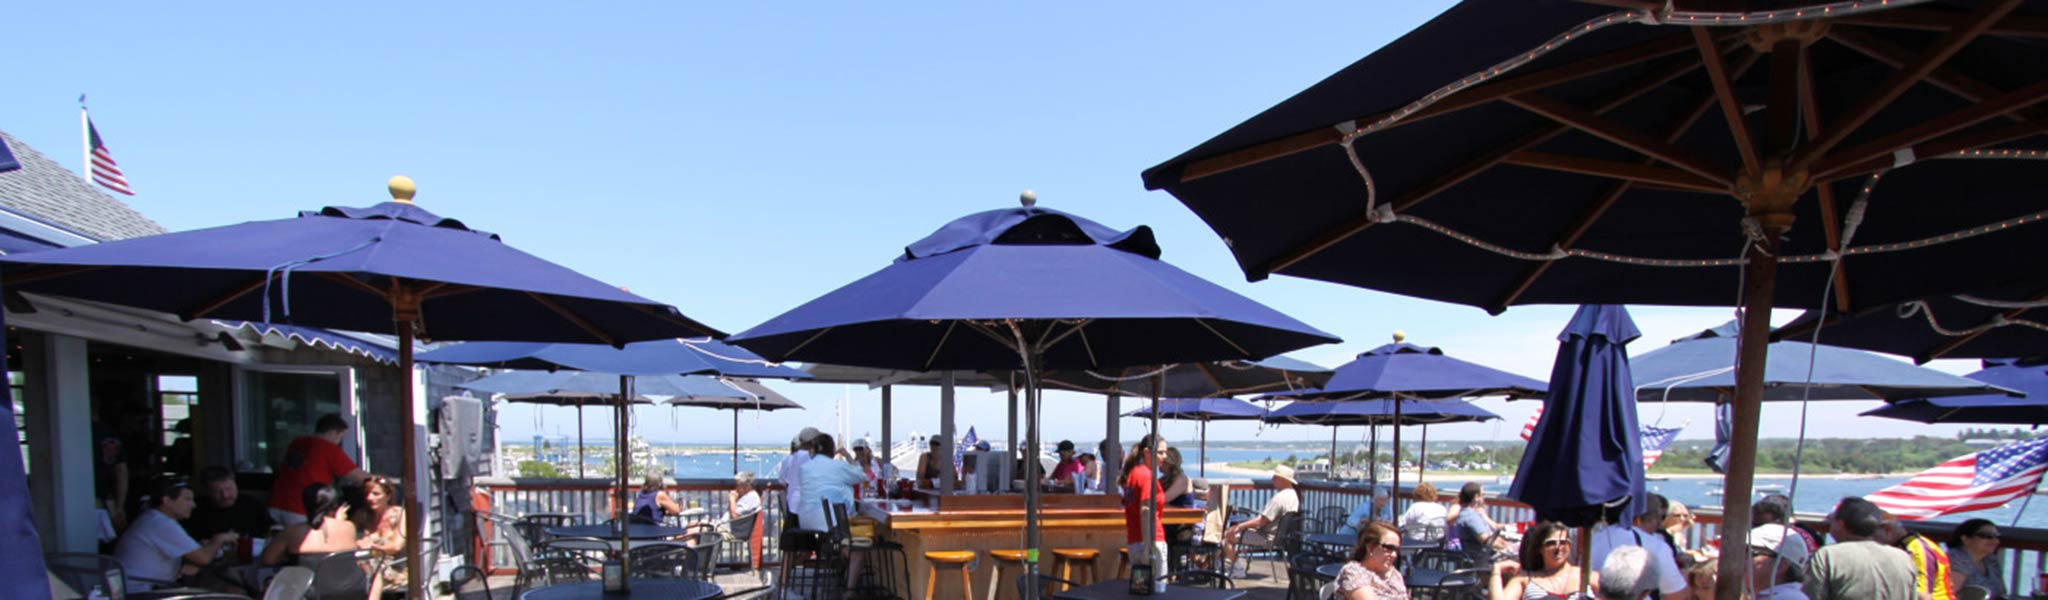 waterfront reastaurant bar martha's vineyard